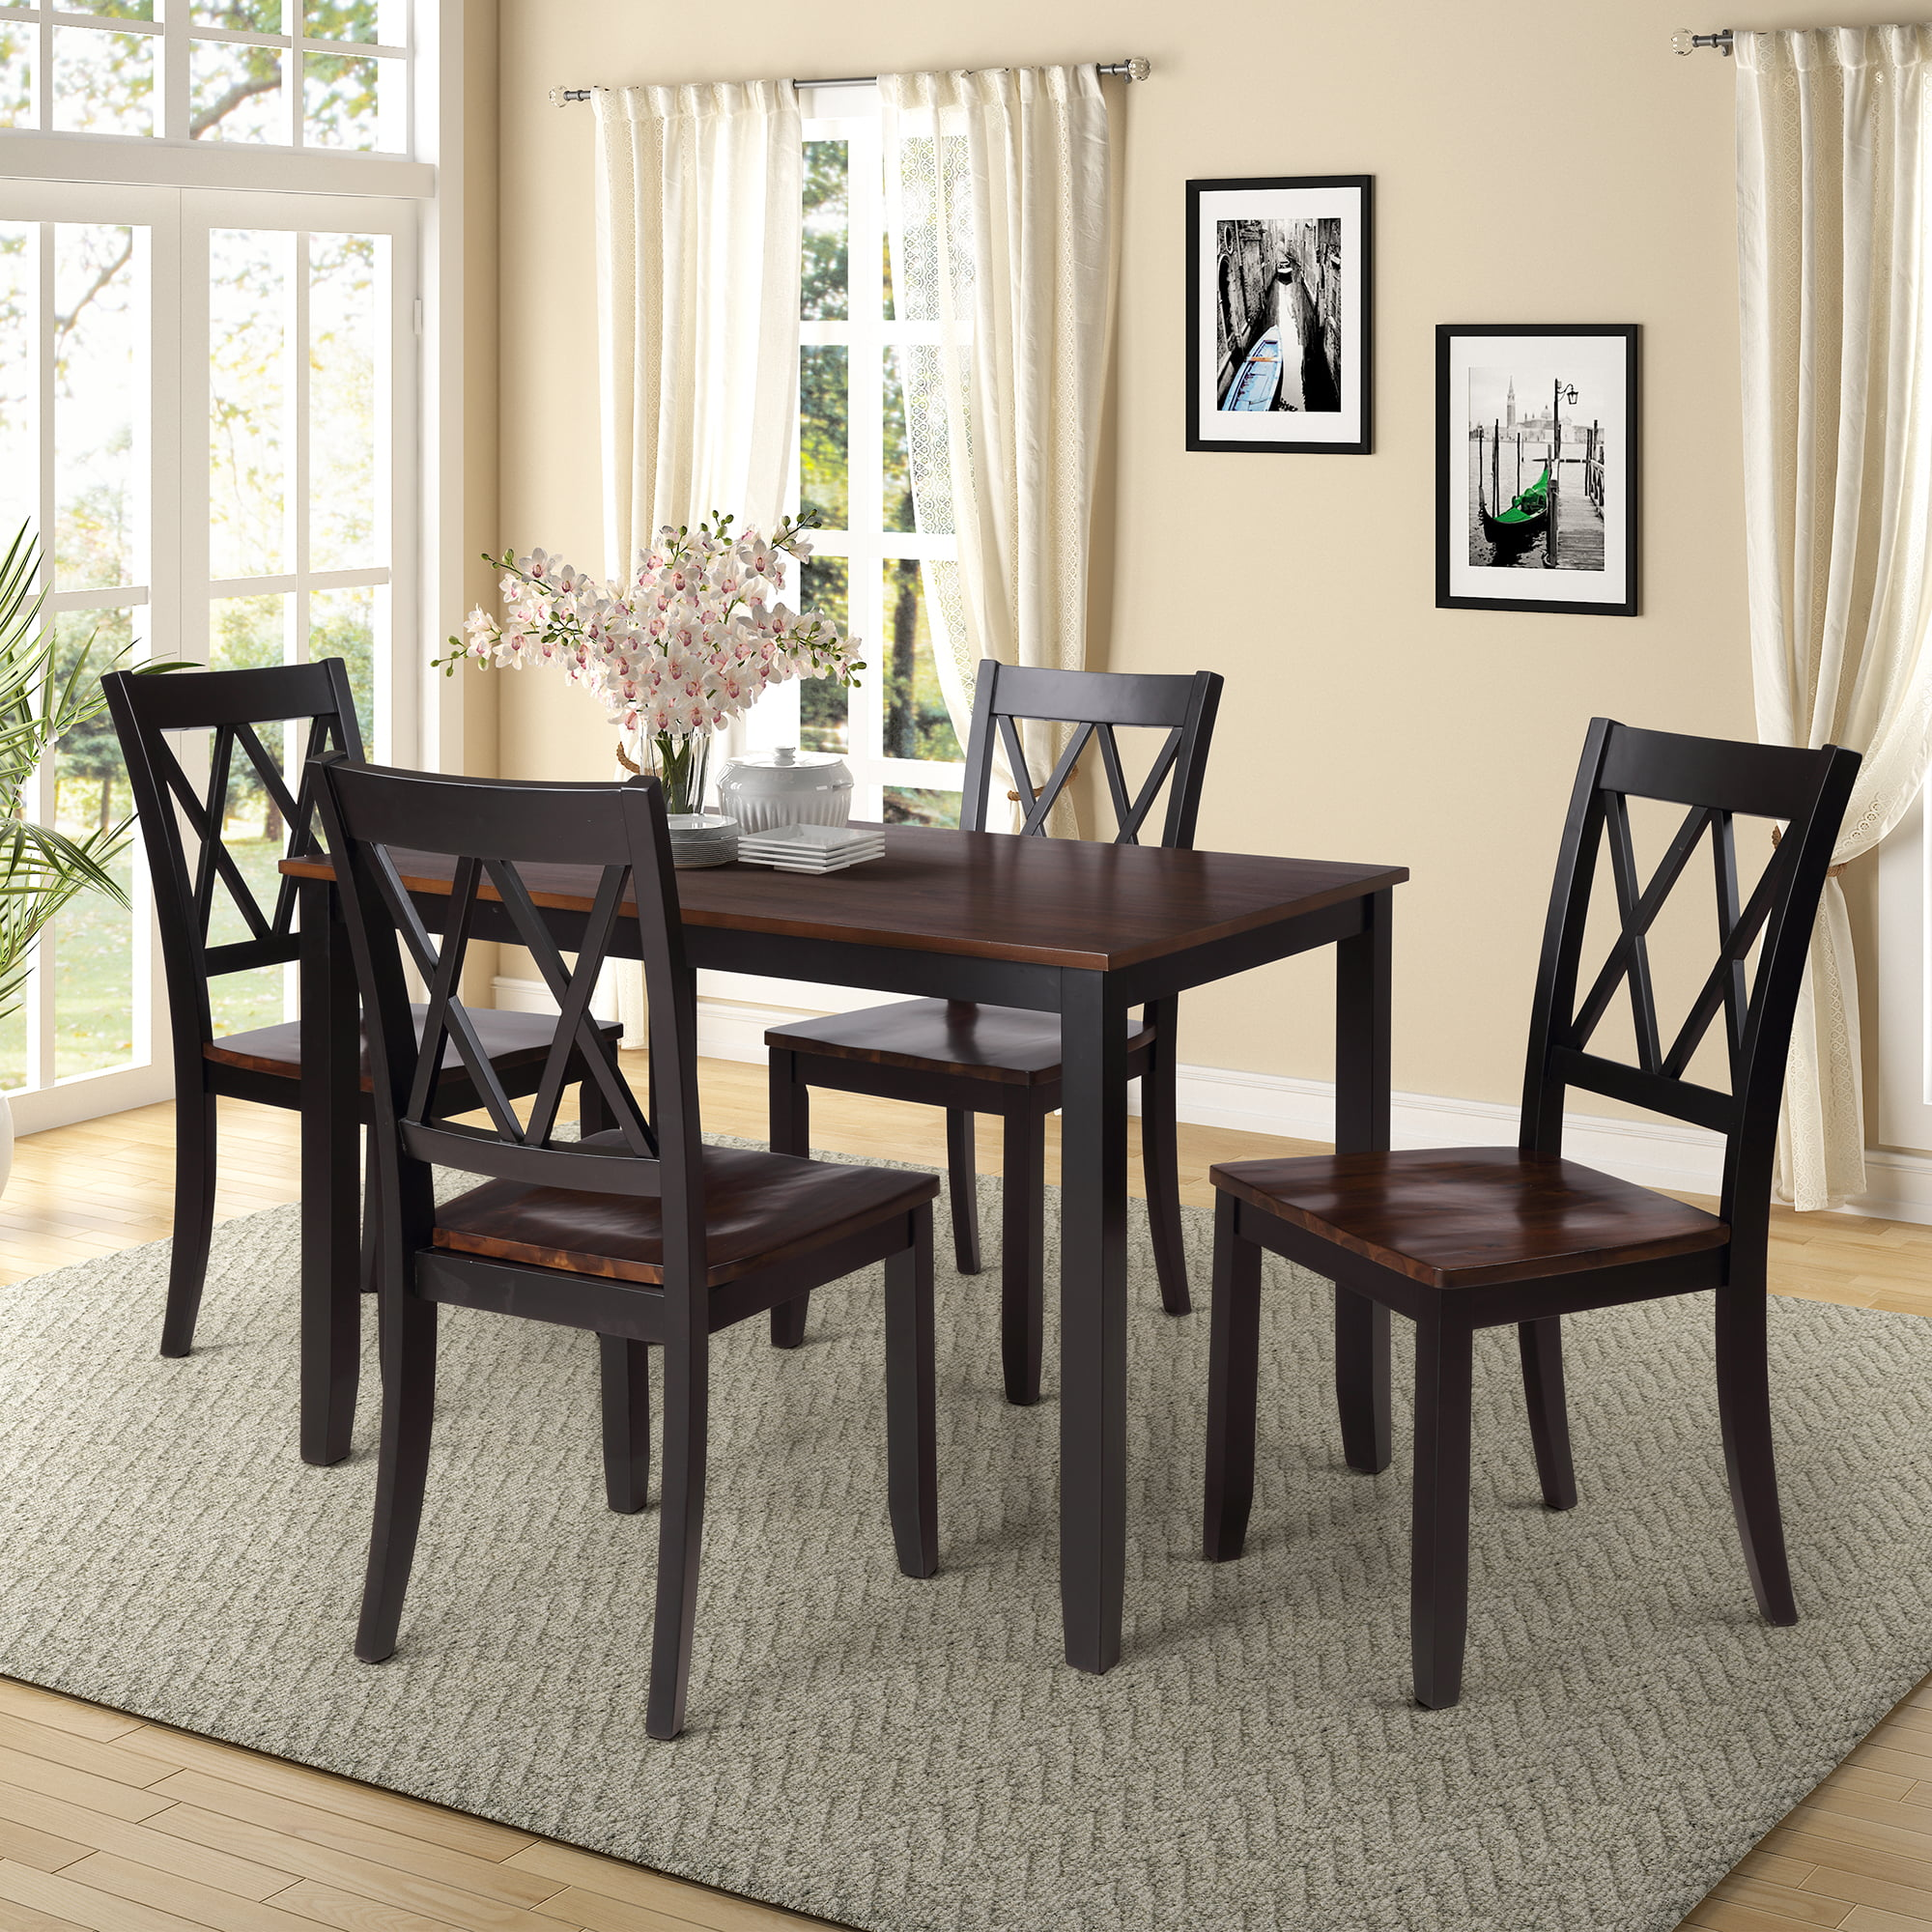 Dining Room Sets Clearance: Clearance!Black Dining Table Set For 4, Modern 5 Piece